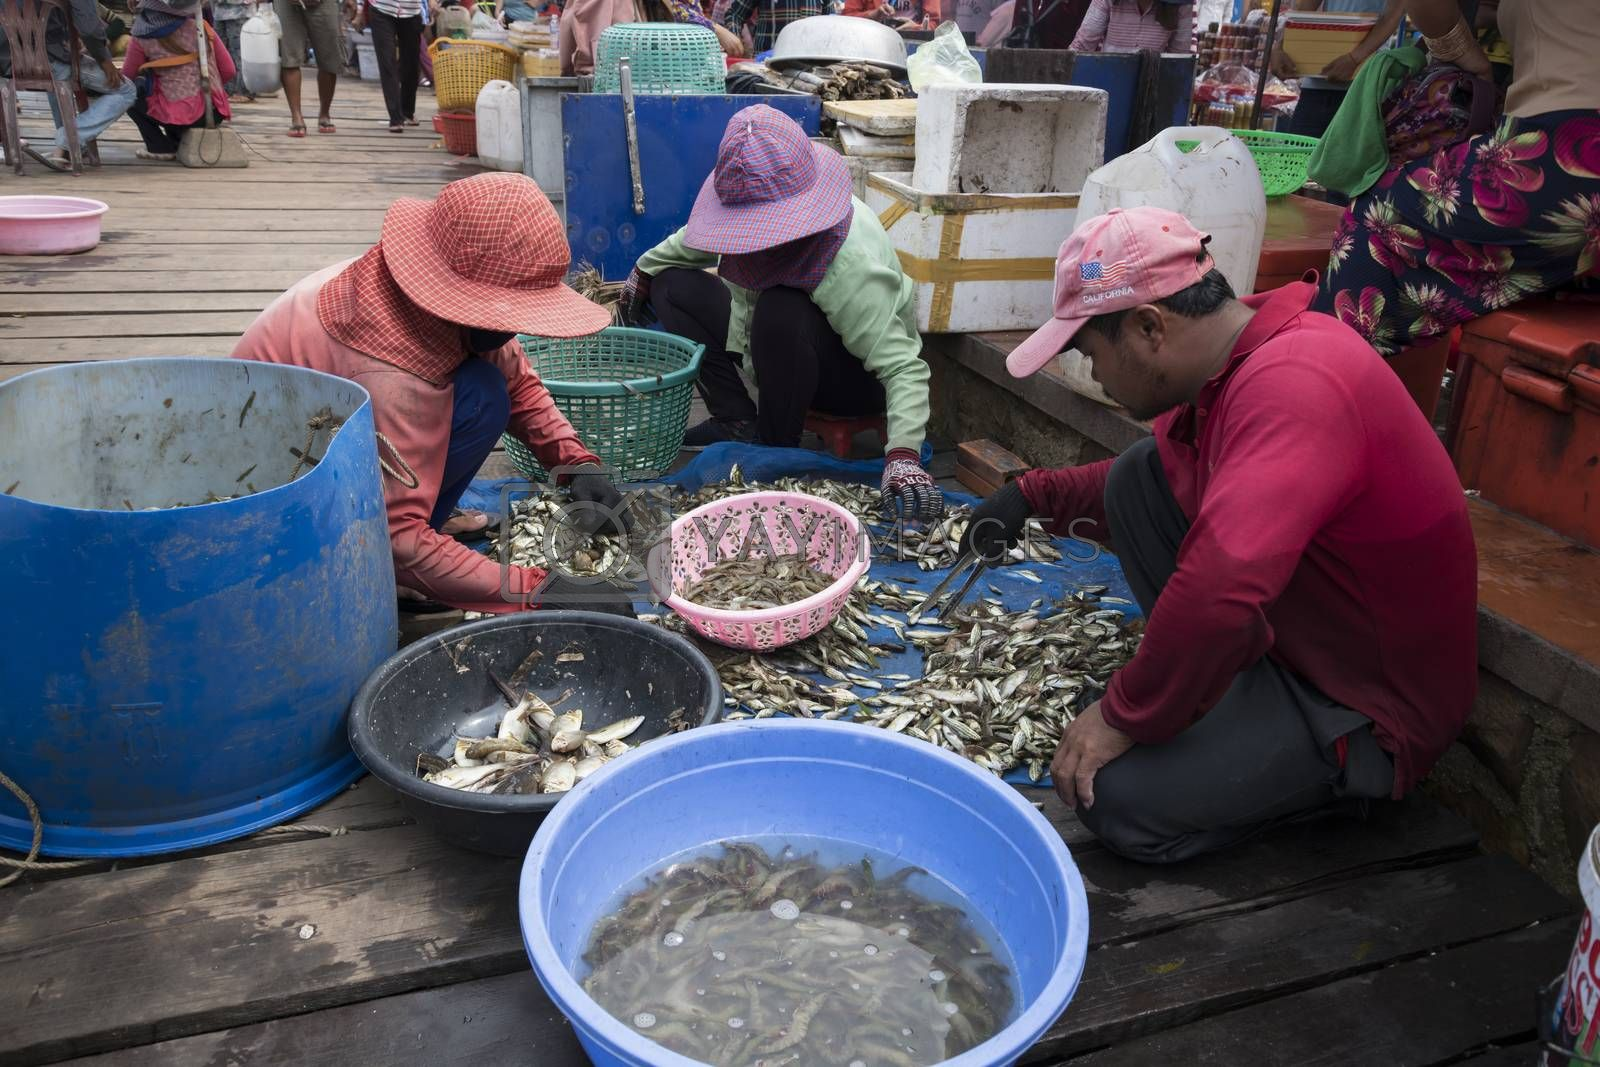 Krong Kaeb, Kep Province, Cambodia, 31 March 2018. Cambodians sorting fishes at the crab market